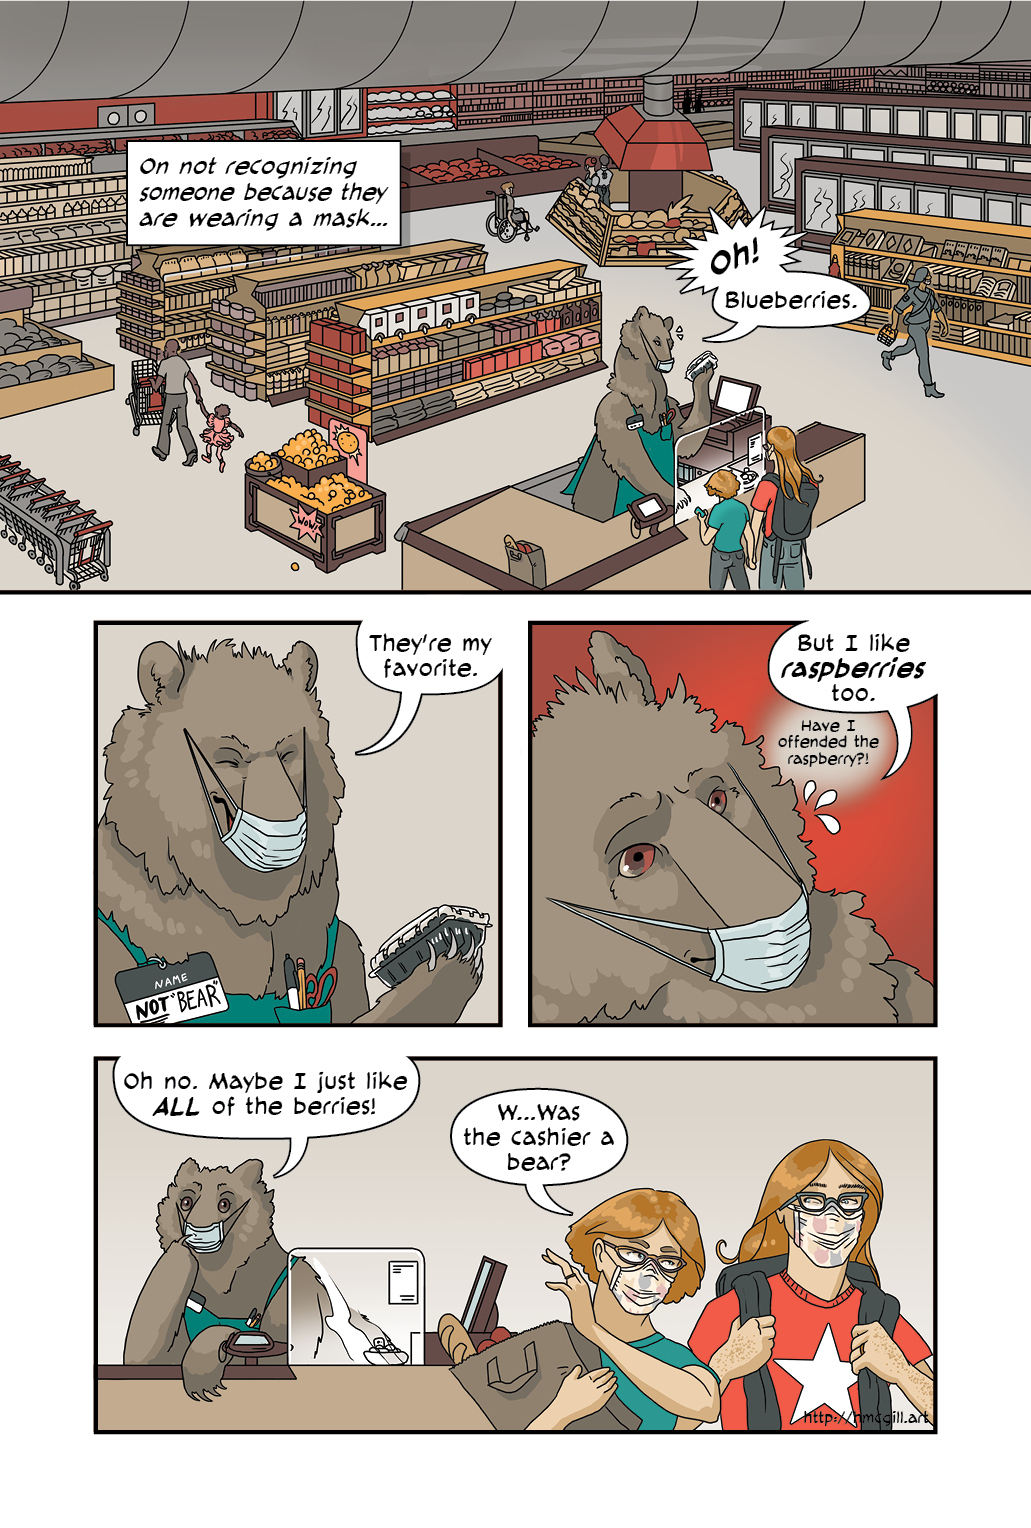 A one-page digital comic that takes place in a grocery store. The artist depicts herself and her partner standing in front of the checkout line, manned by what is clearly a bear who is wearing a mask.  Narrator: On not recognizing someone because they are wearing a mask...  Bear cashier: Oh! Blueberries. They're my favorite.   The bear cashier panics slightly.  Bear cashier: But I like raspberries too.  Bear cashier: (thinking) Have I offended the raspberry?!  Bear cashier: Oh no. Maybe I just like all of the berries!  The artist and her partner walk away from the cashier with all their paid groceries.  Artist: W...was the cashier a bear?